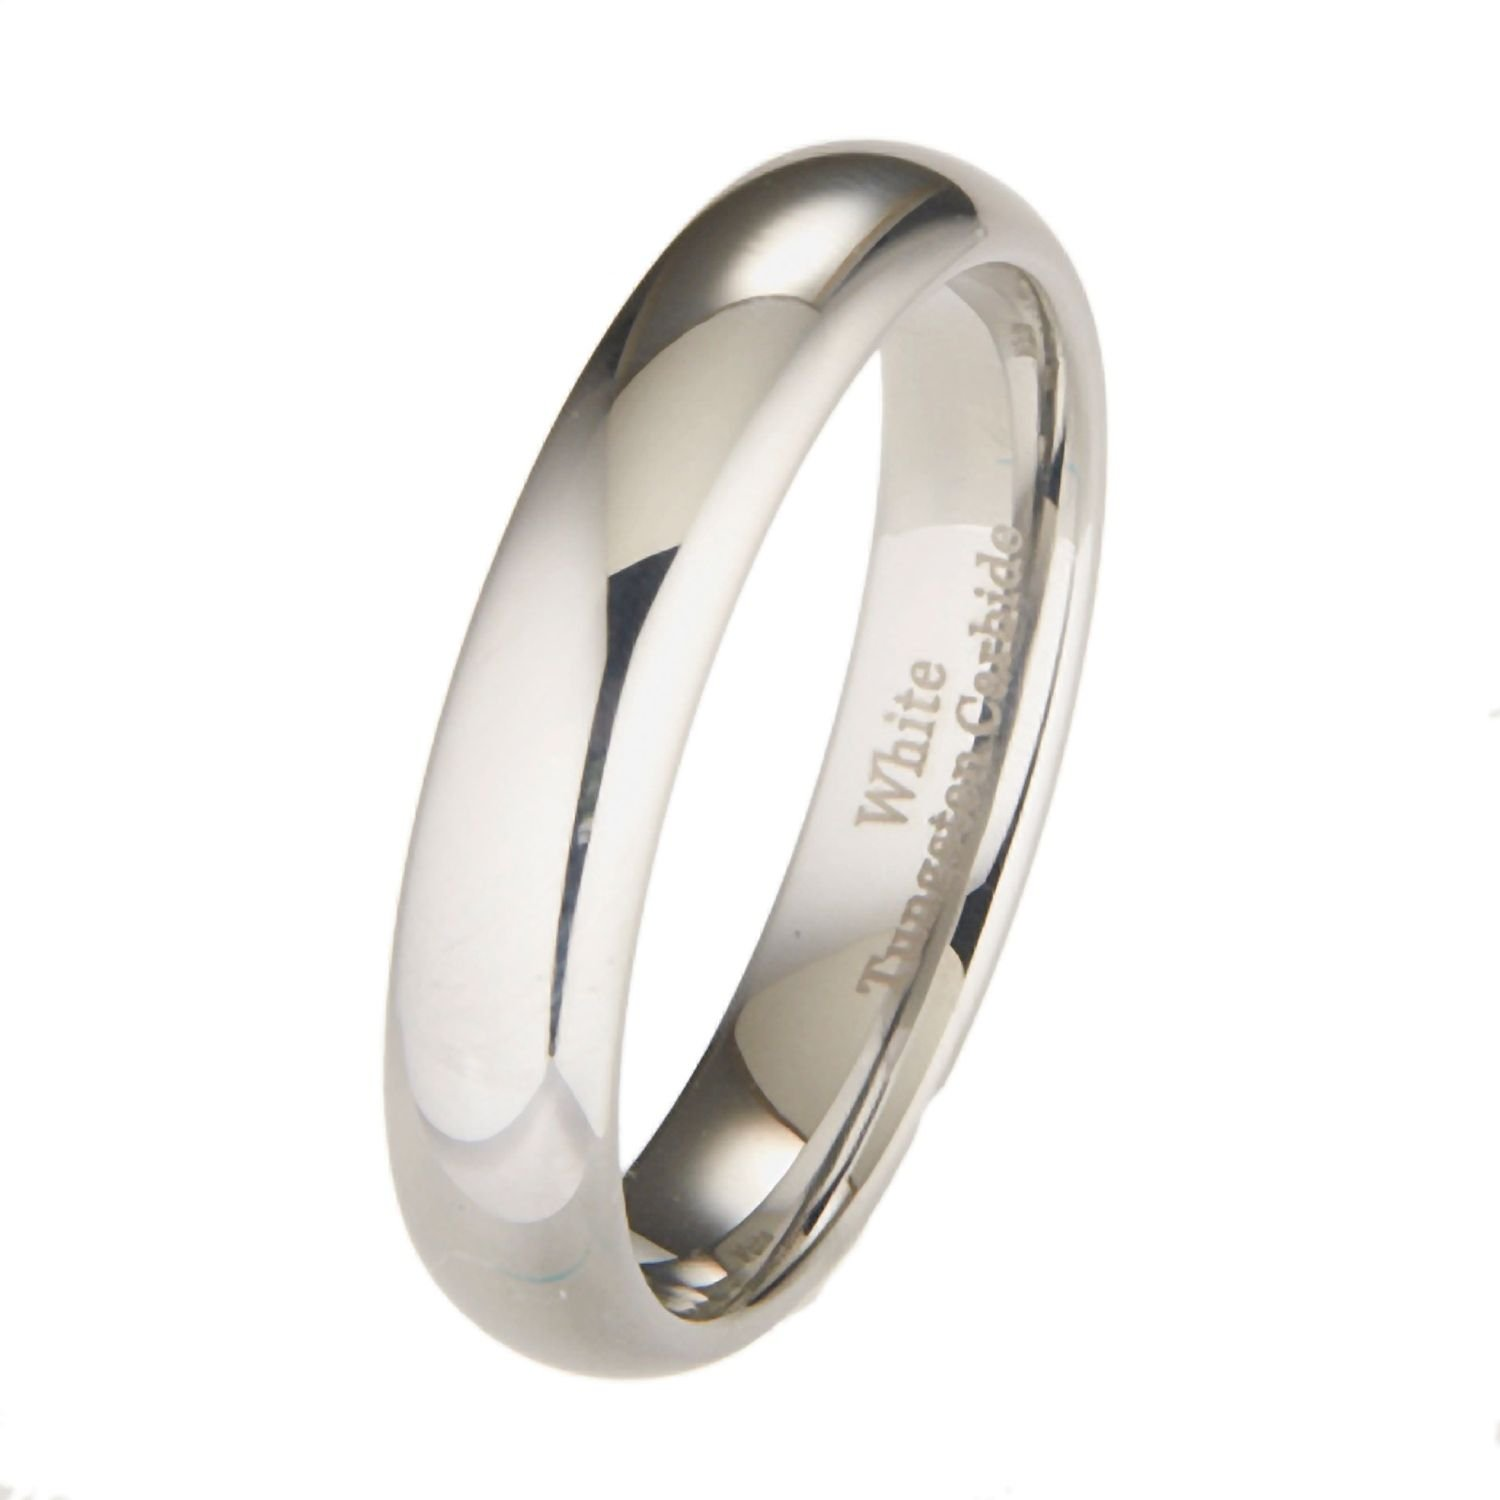 MJ Metals Jewelry 5mm White Tungsten Carbide Polished Classic Wedding Ring Size 12.5